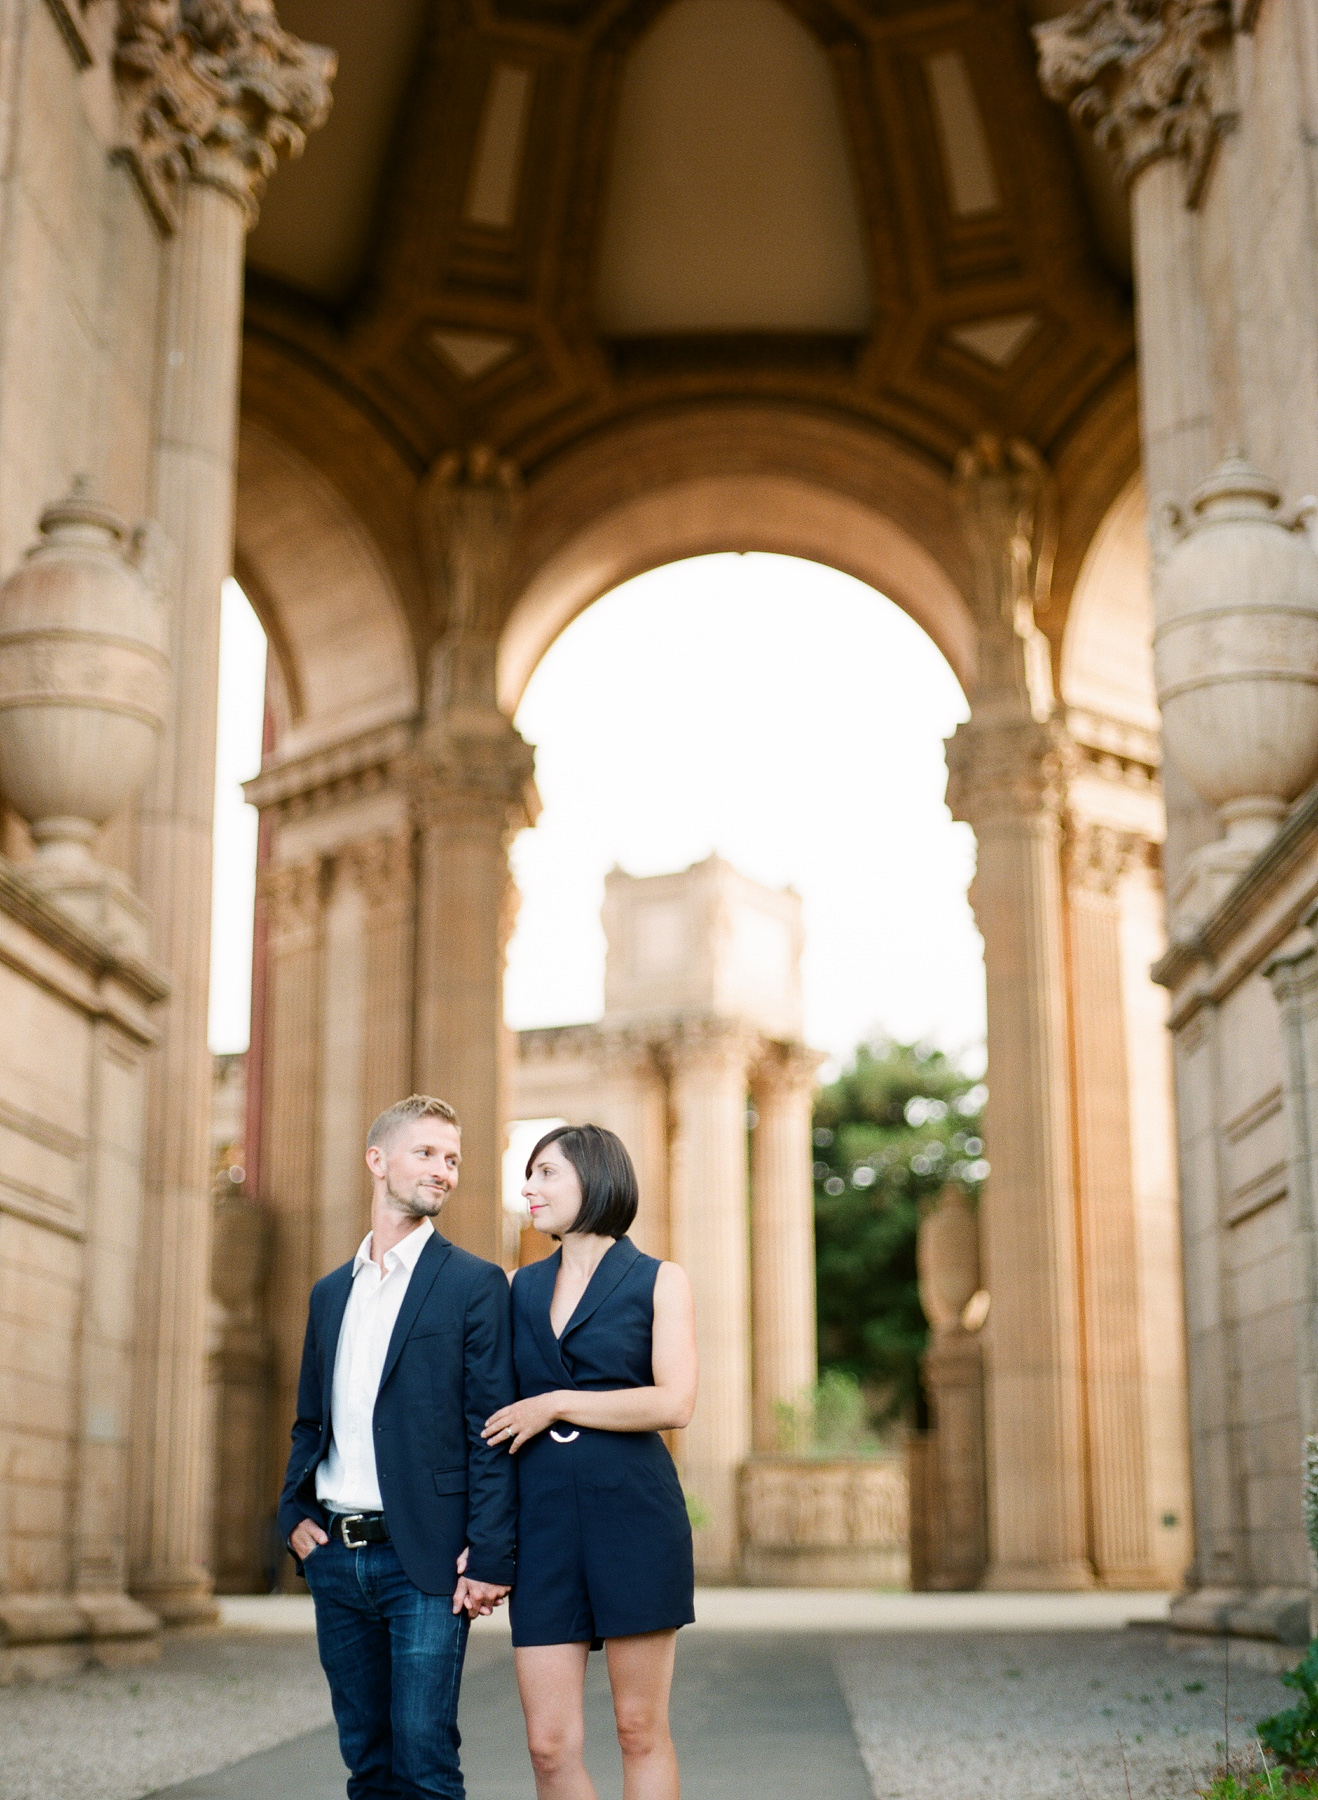 San Francisco Engagement Session Film Photographer 12.jpg